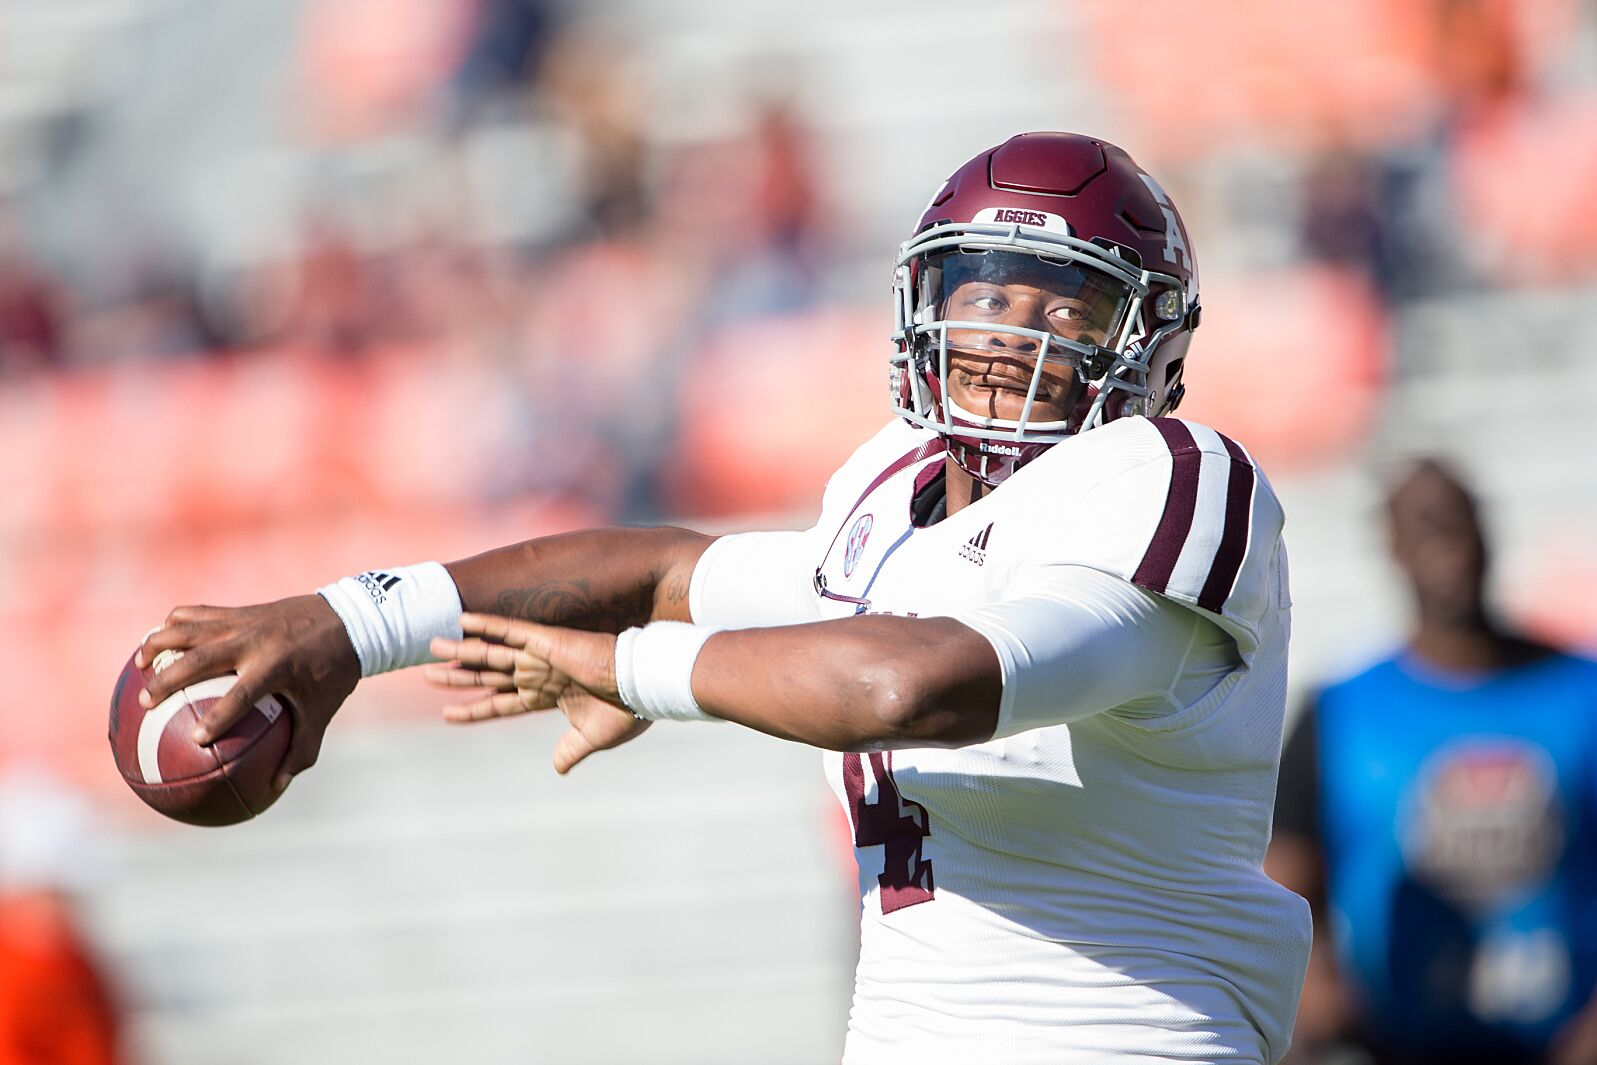 Texas A&M football: Building a starting lineup with only 2018-19 recruits